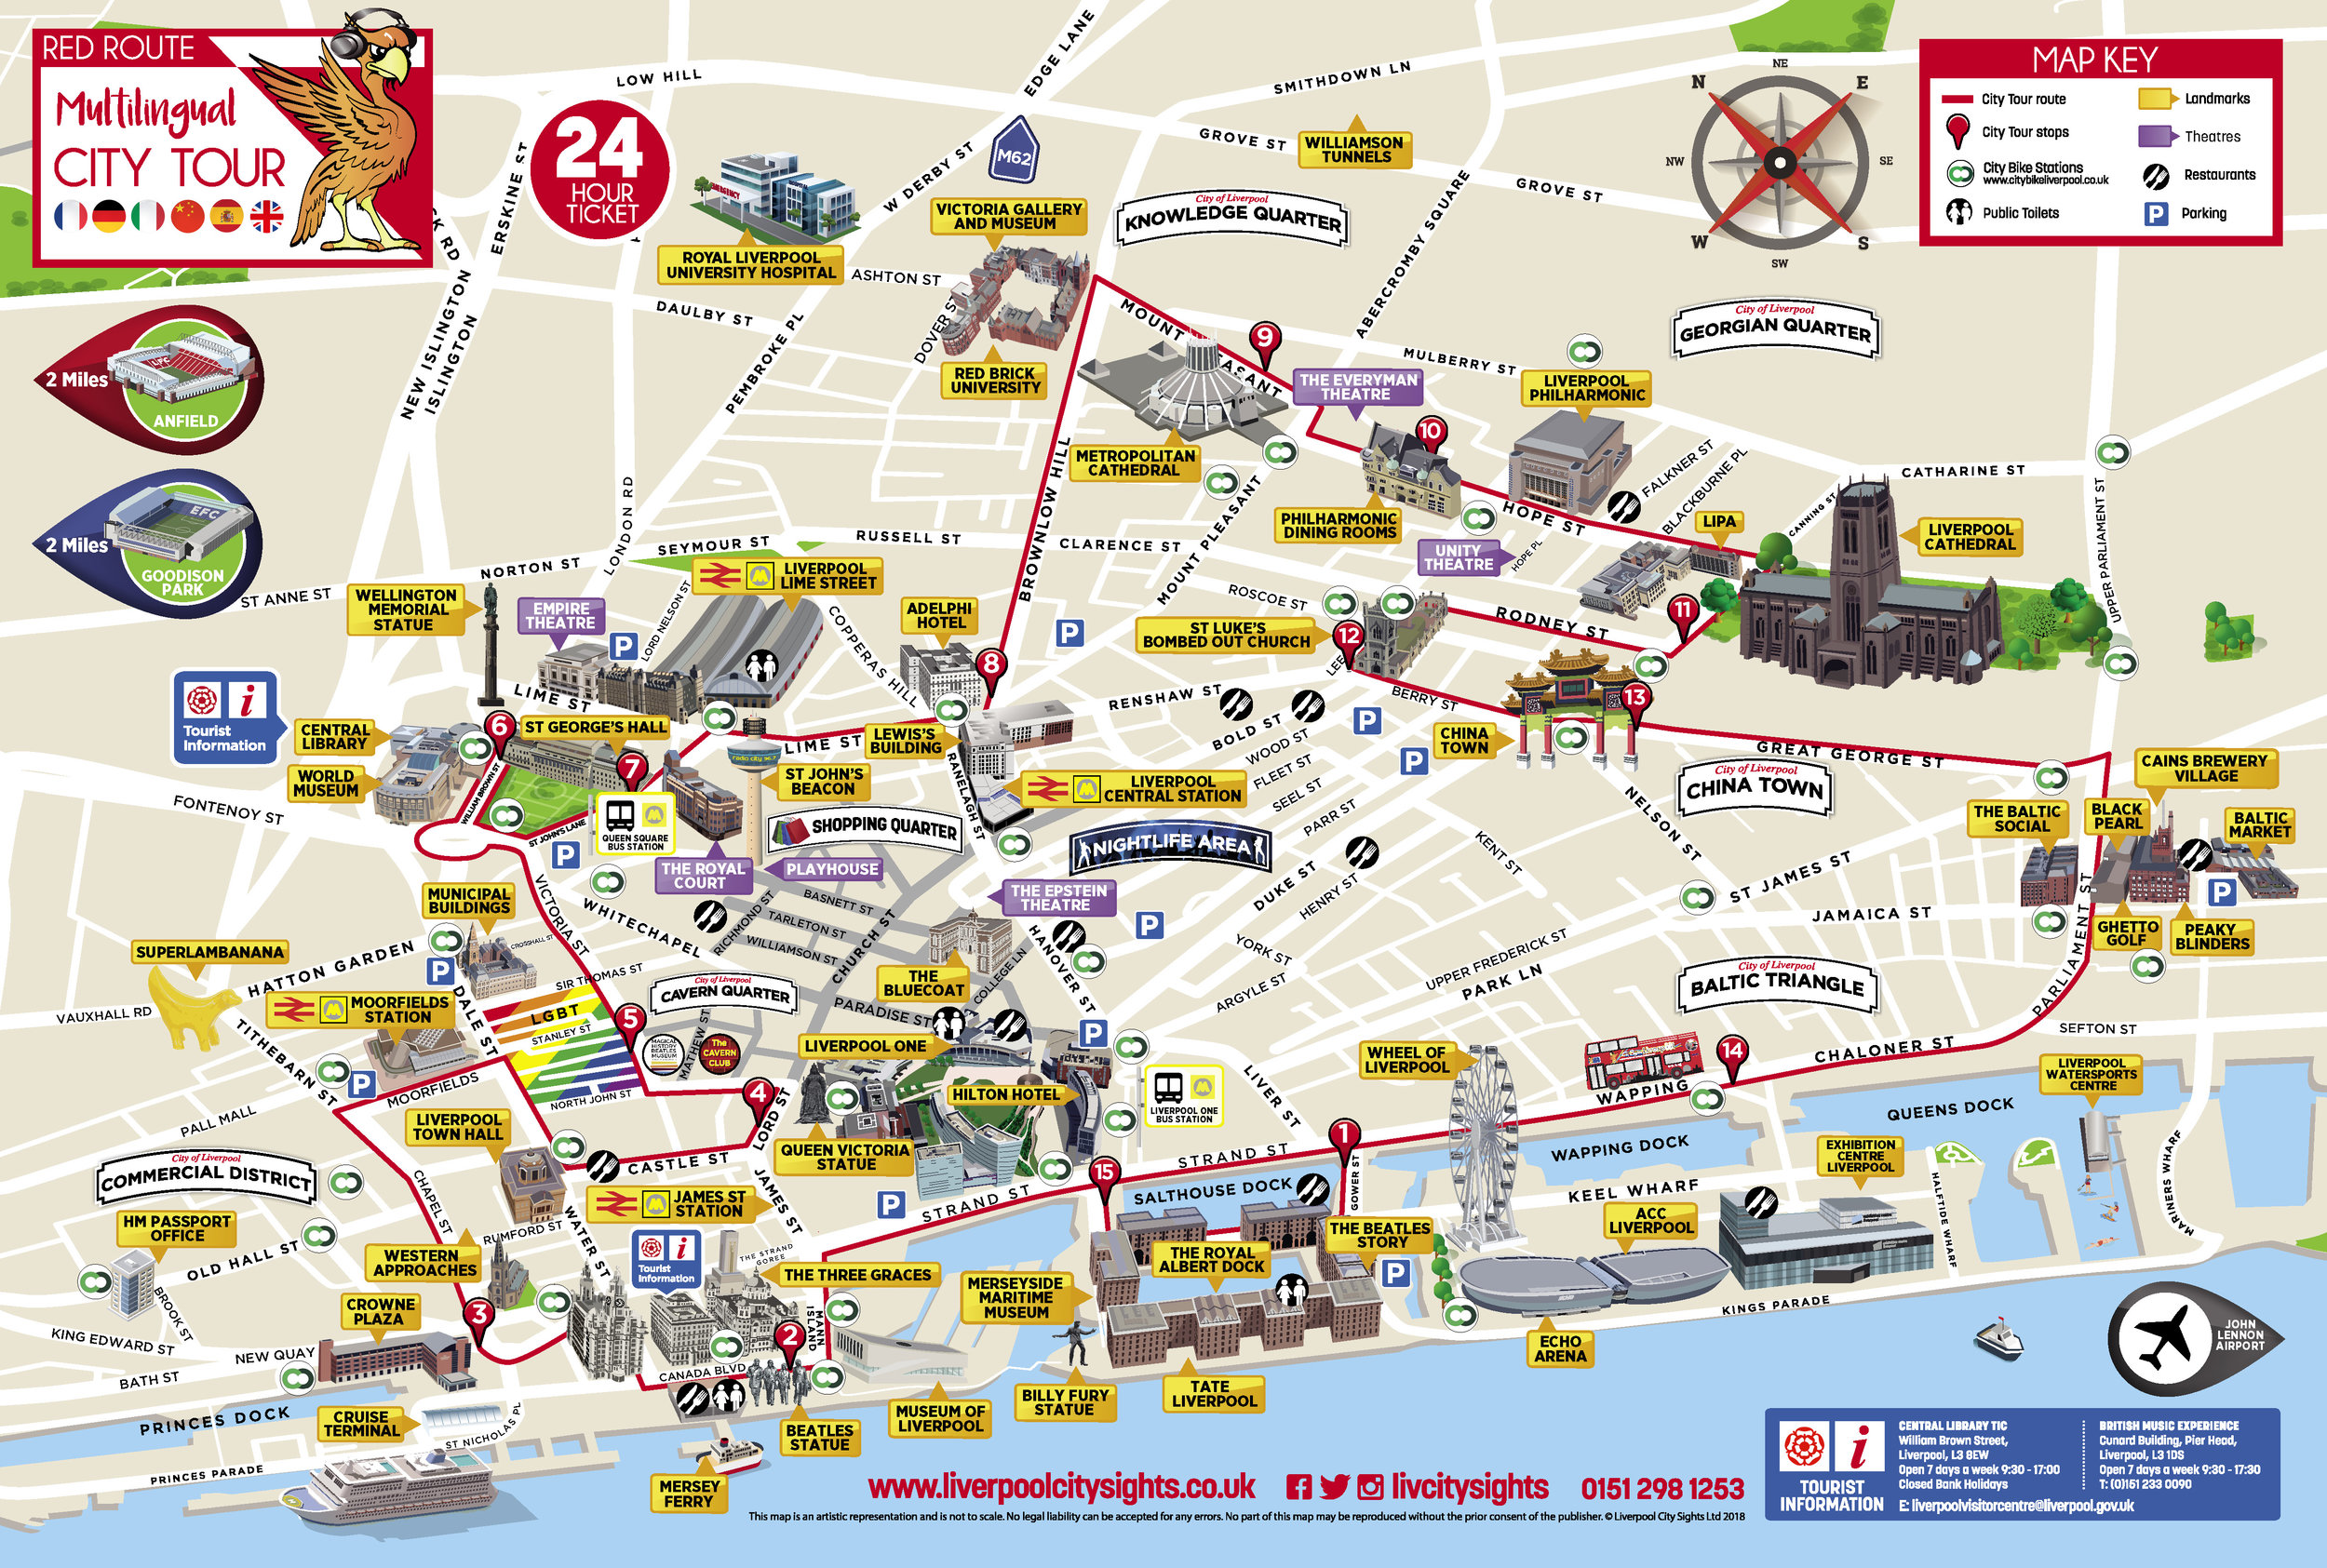 Red Route - City Tour Map Download